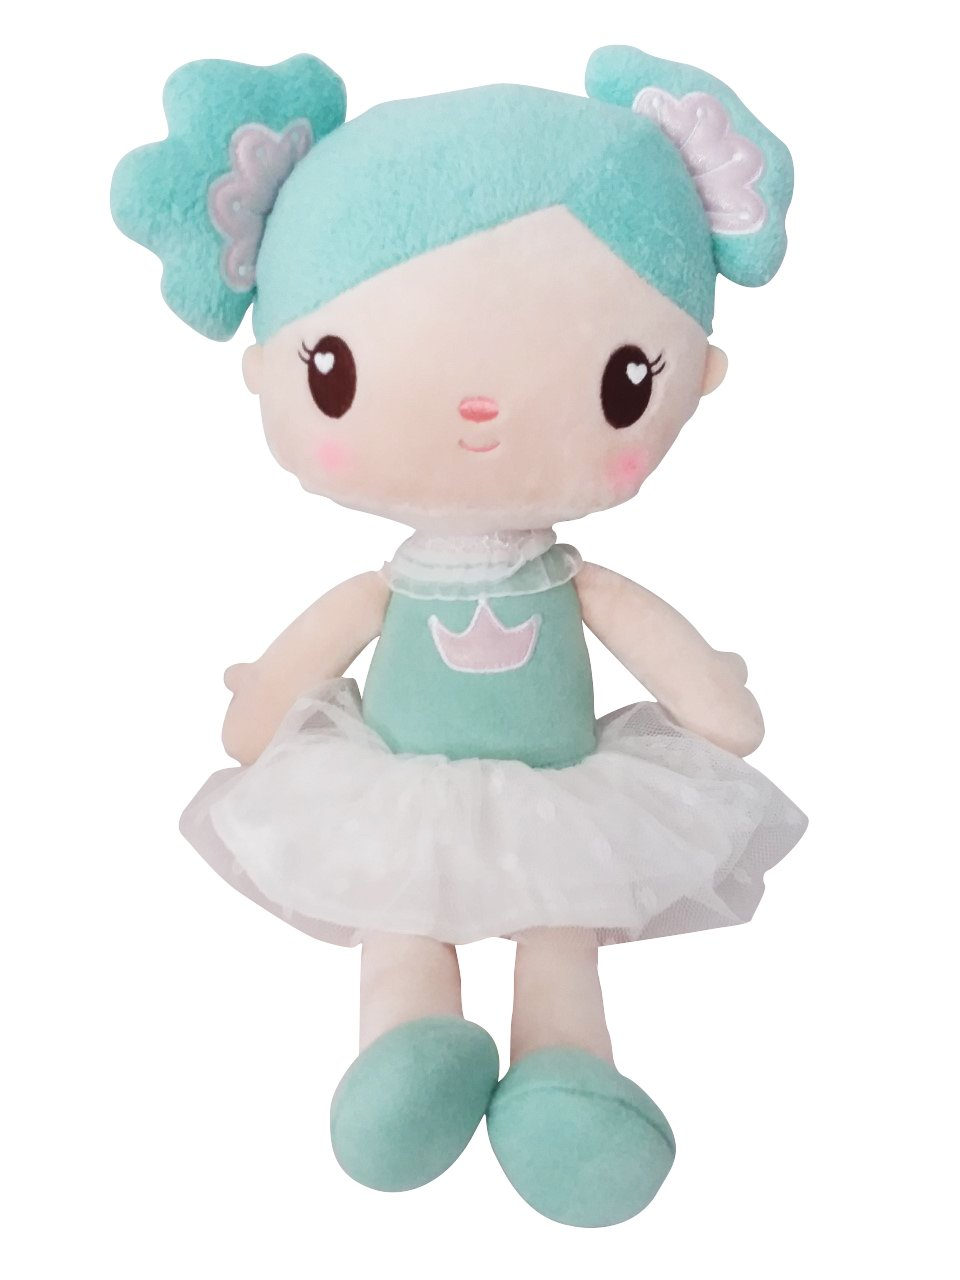 Polly the Rag Doll Baby Doll